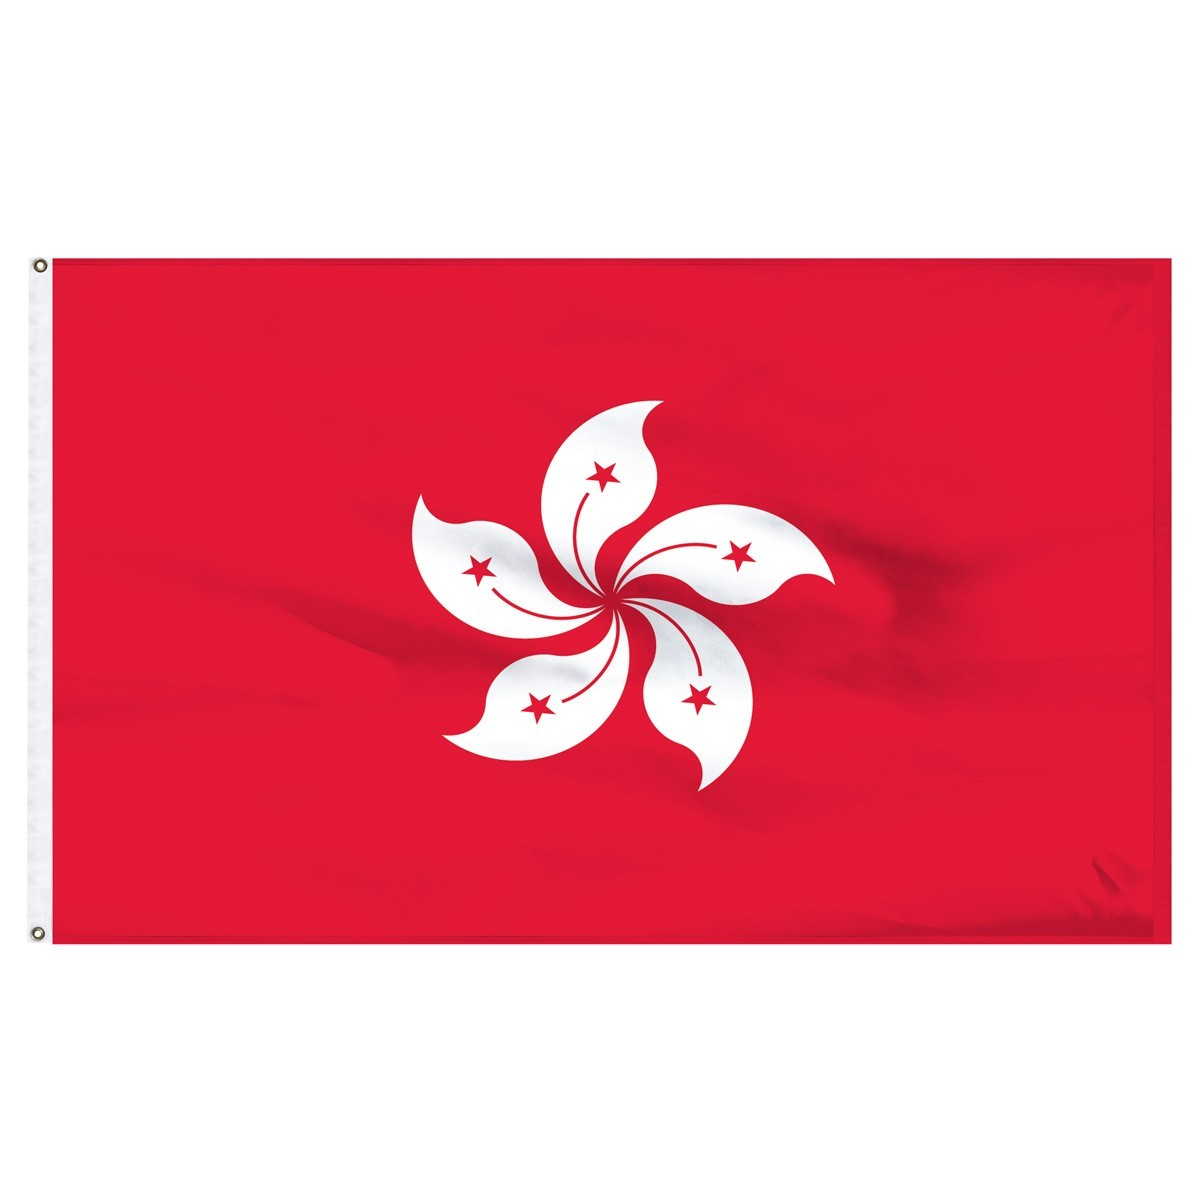 Hong Kong flags for sale by 1-800 Flags 1800 Flags